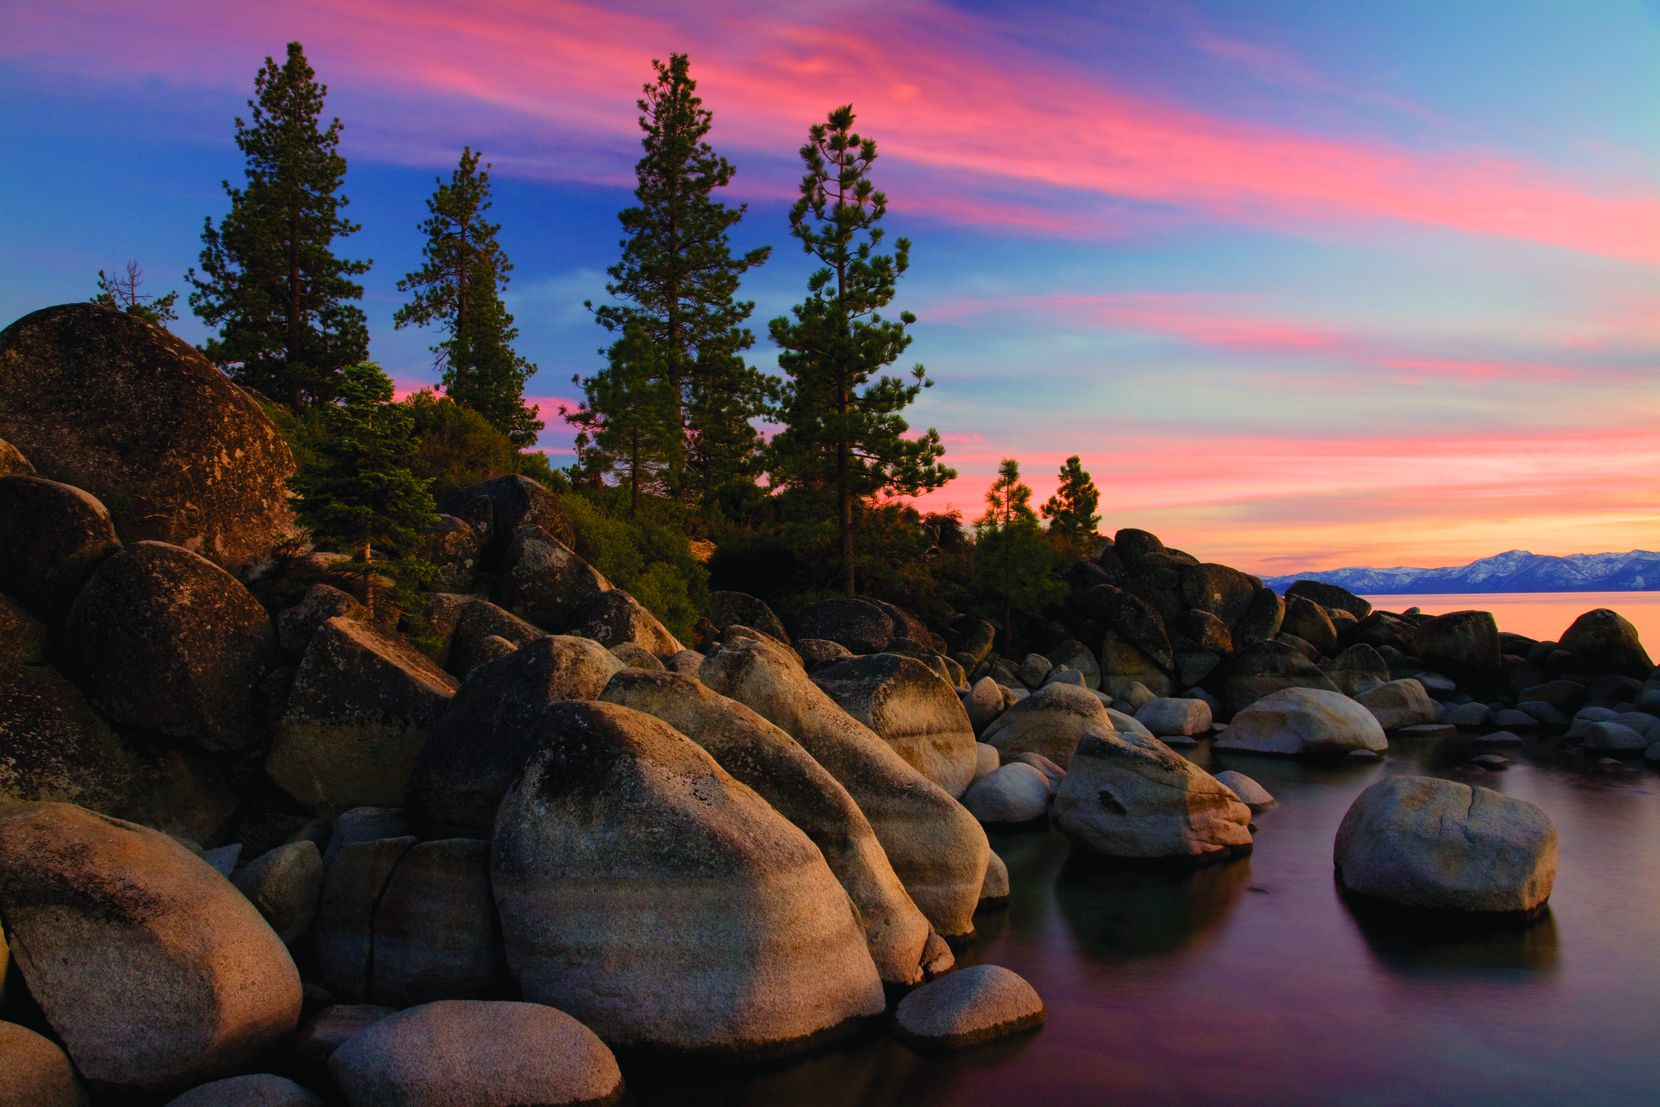 In the fall, time seems to stand still during sunsets at Sand Harbor State Park in Lake Tahoe.